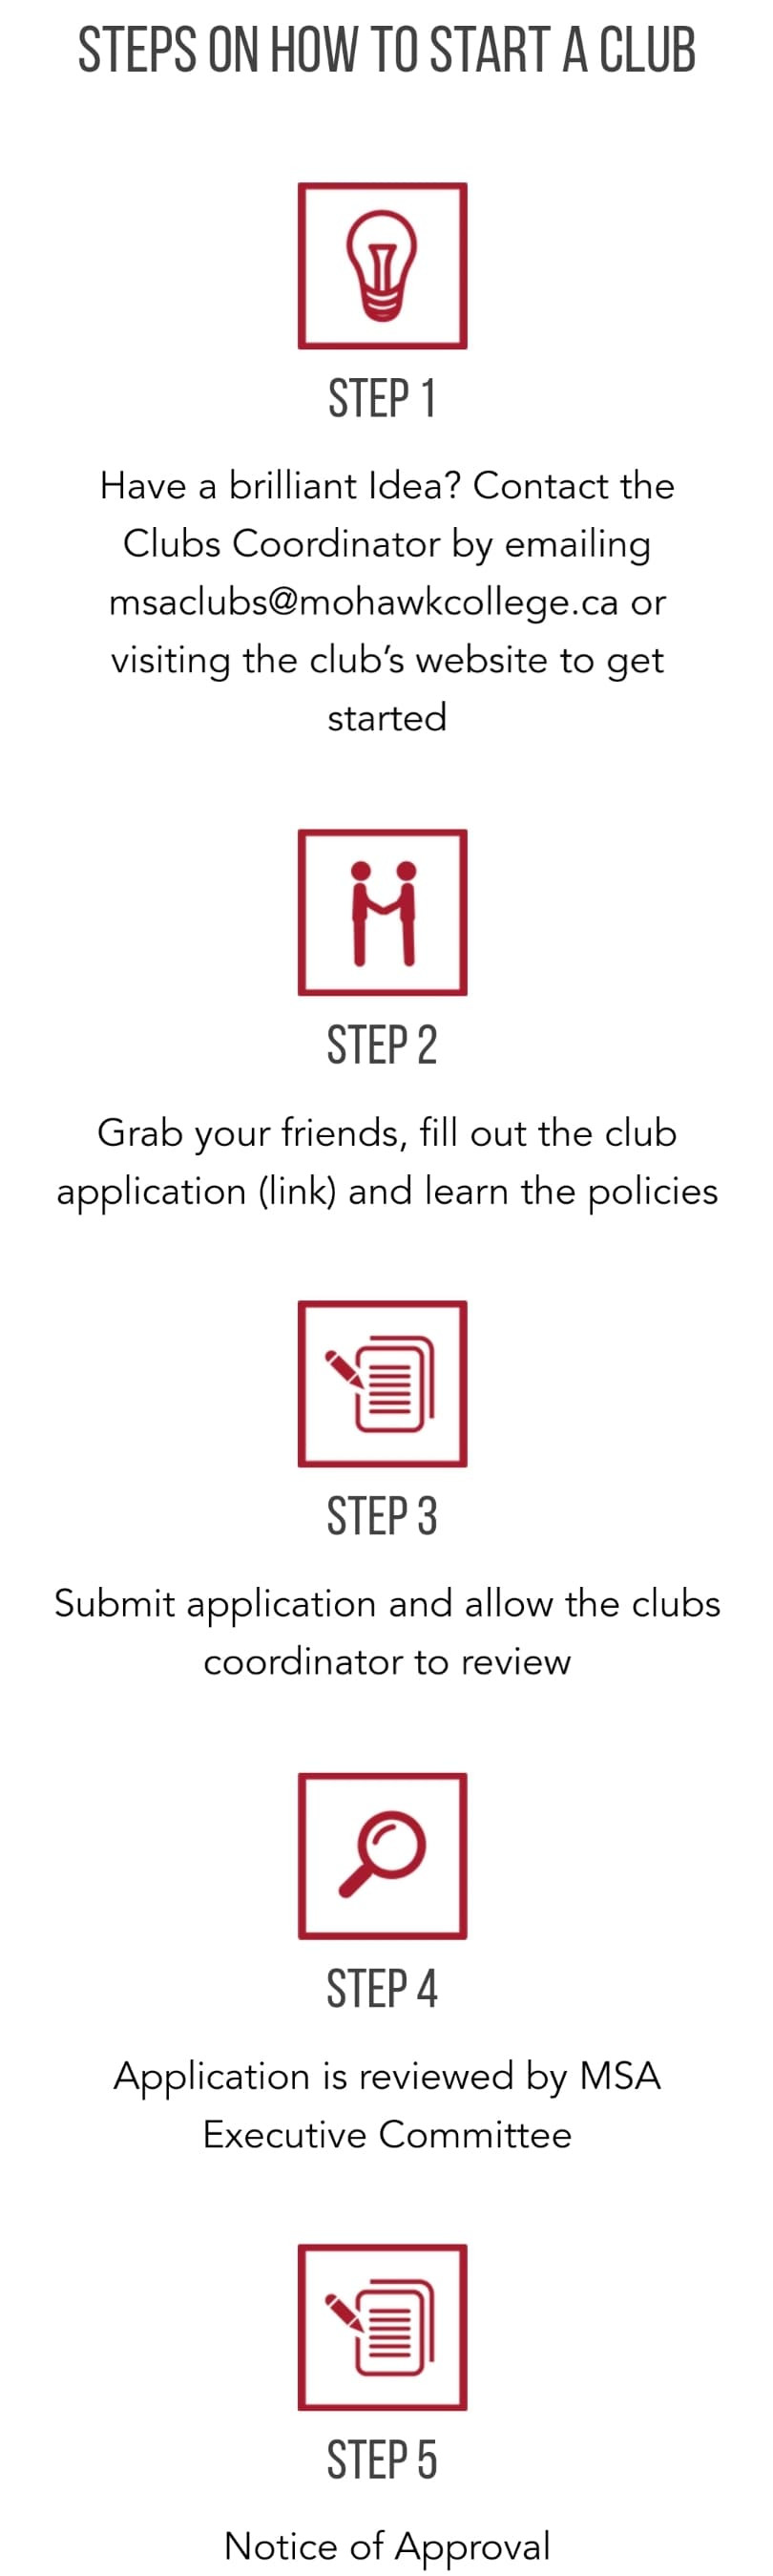 A graphic highlighting the steps to start an MSA Club.